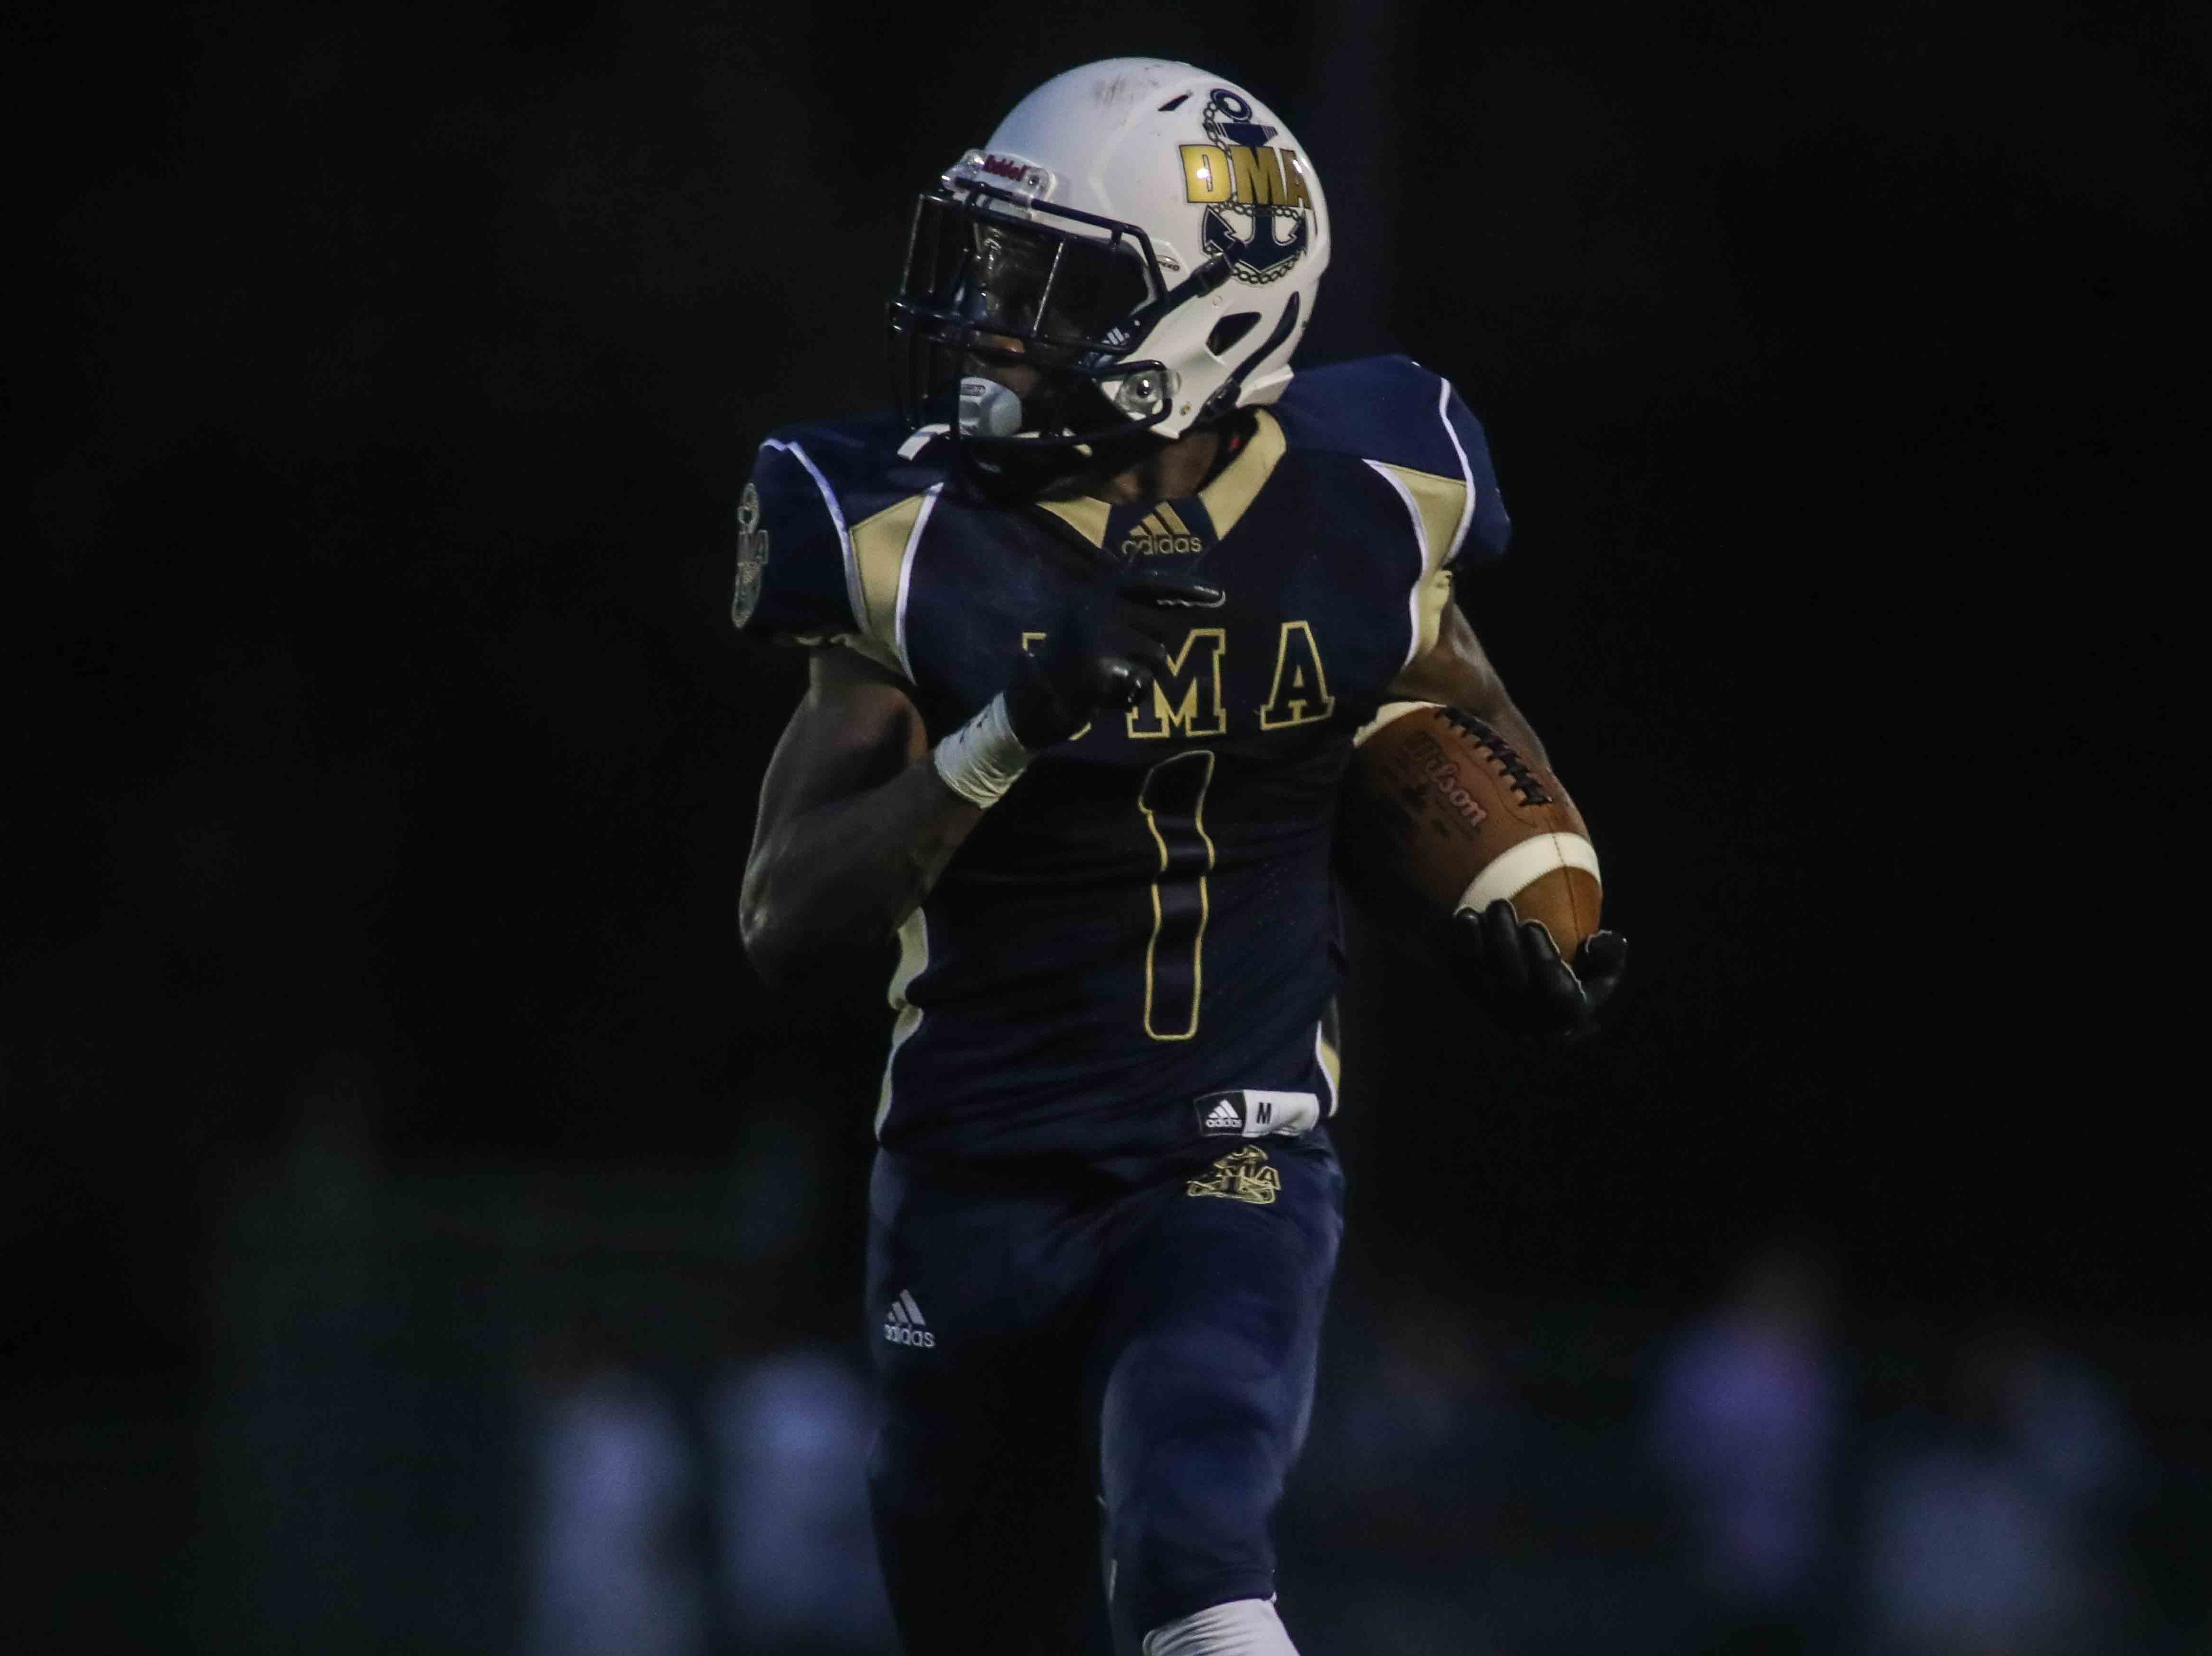 Delaware Military Academy running back Corahn Alleyne (1) rushes for a touchdown in the first quarter of a week one DIAA game between Delaware Military Academy and Charter School of Wilmington, Friday, Sept. 07, 2018 at Baynard Stadium in Wilmington, DE.